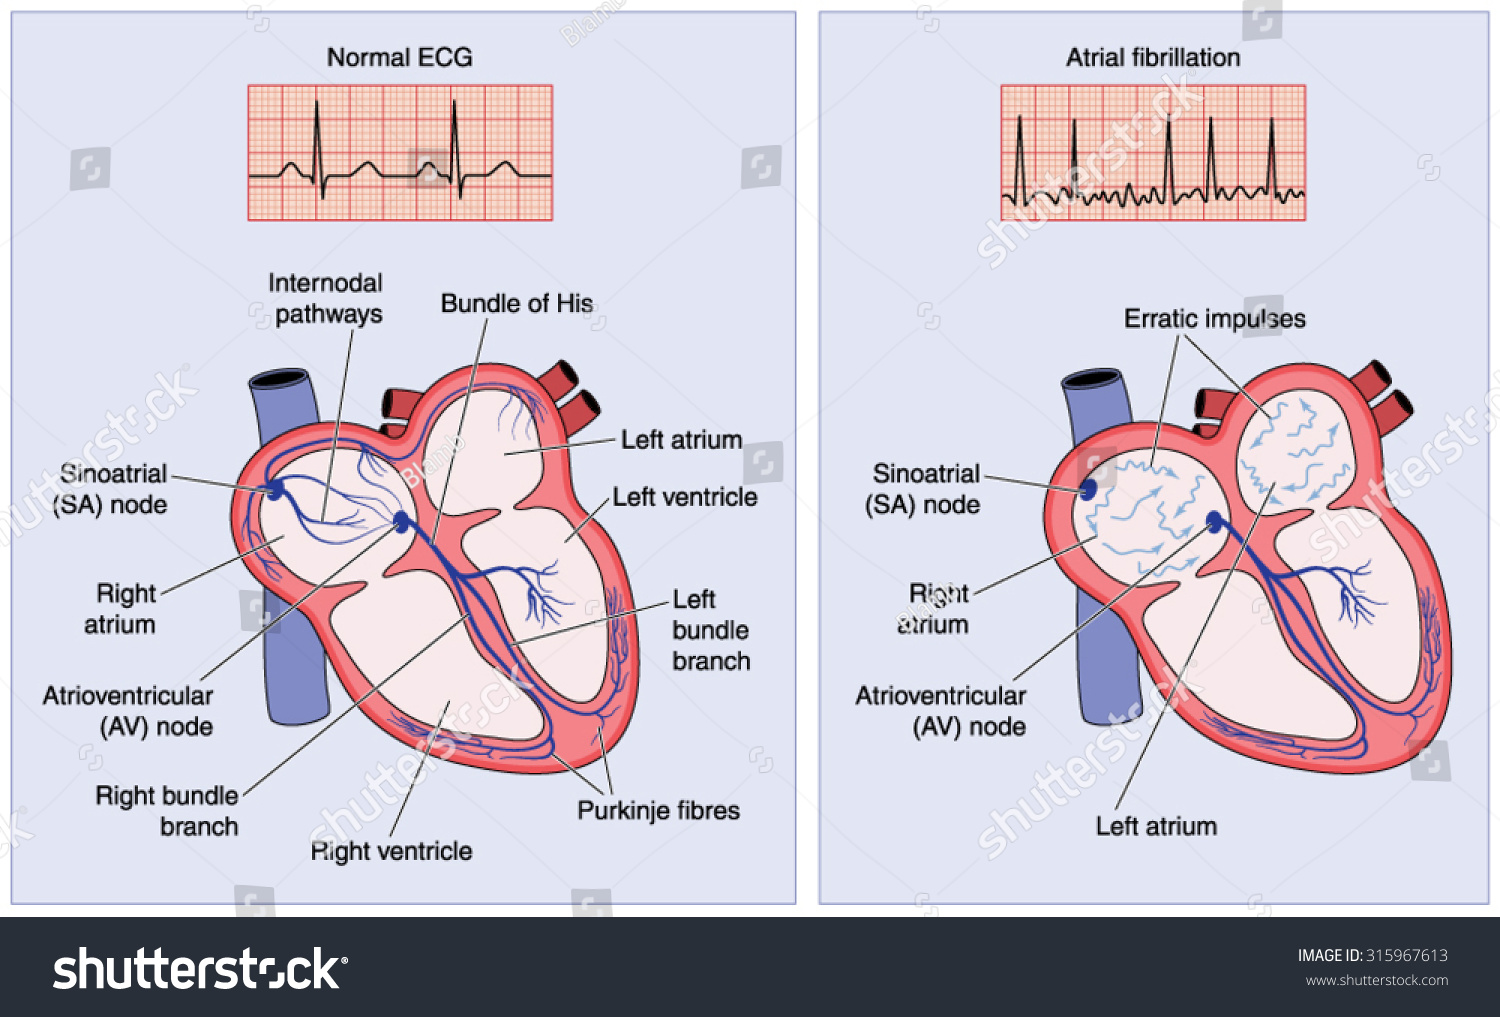 cardiac conduction system diagram trailer wire harness drawing heart electrical showing stock